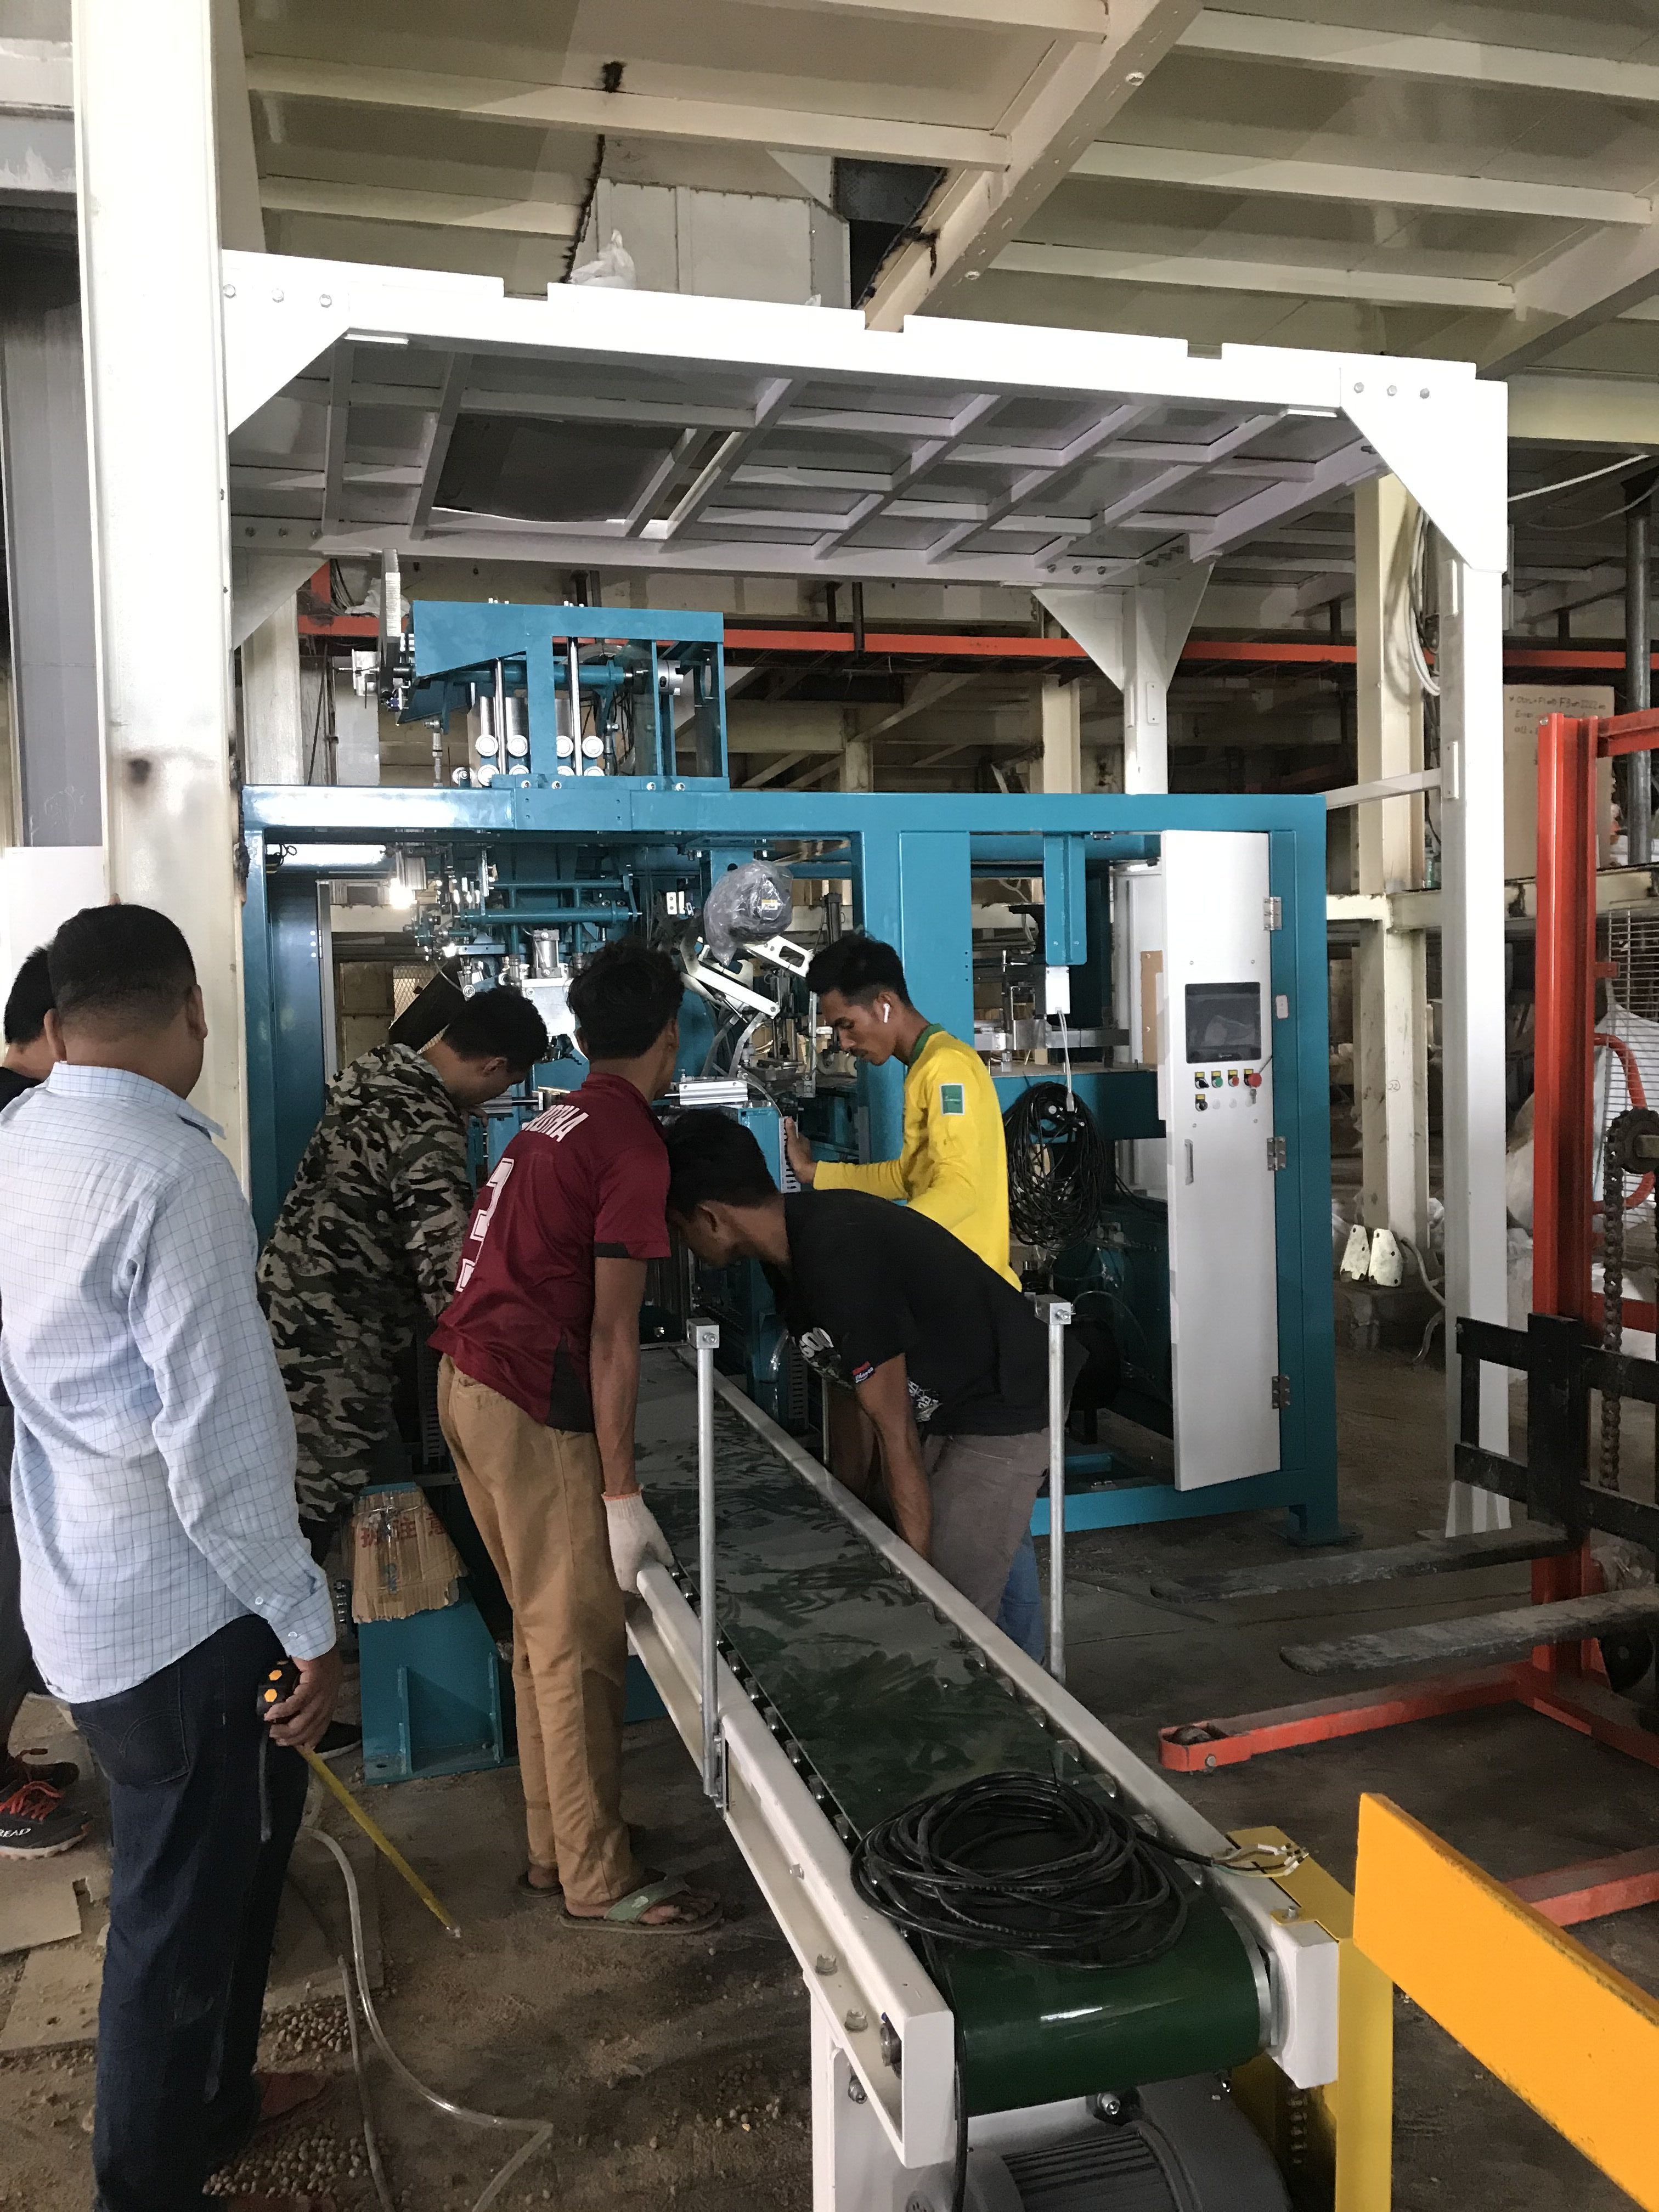 automated bagging system, Fully Automatic Packing & Palletizing Line, Fully Automatic Packing Palletizing Line, Fully Automatic Packing Line, Fully Automatic Bagging Line